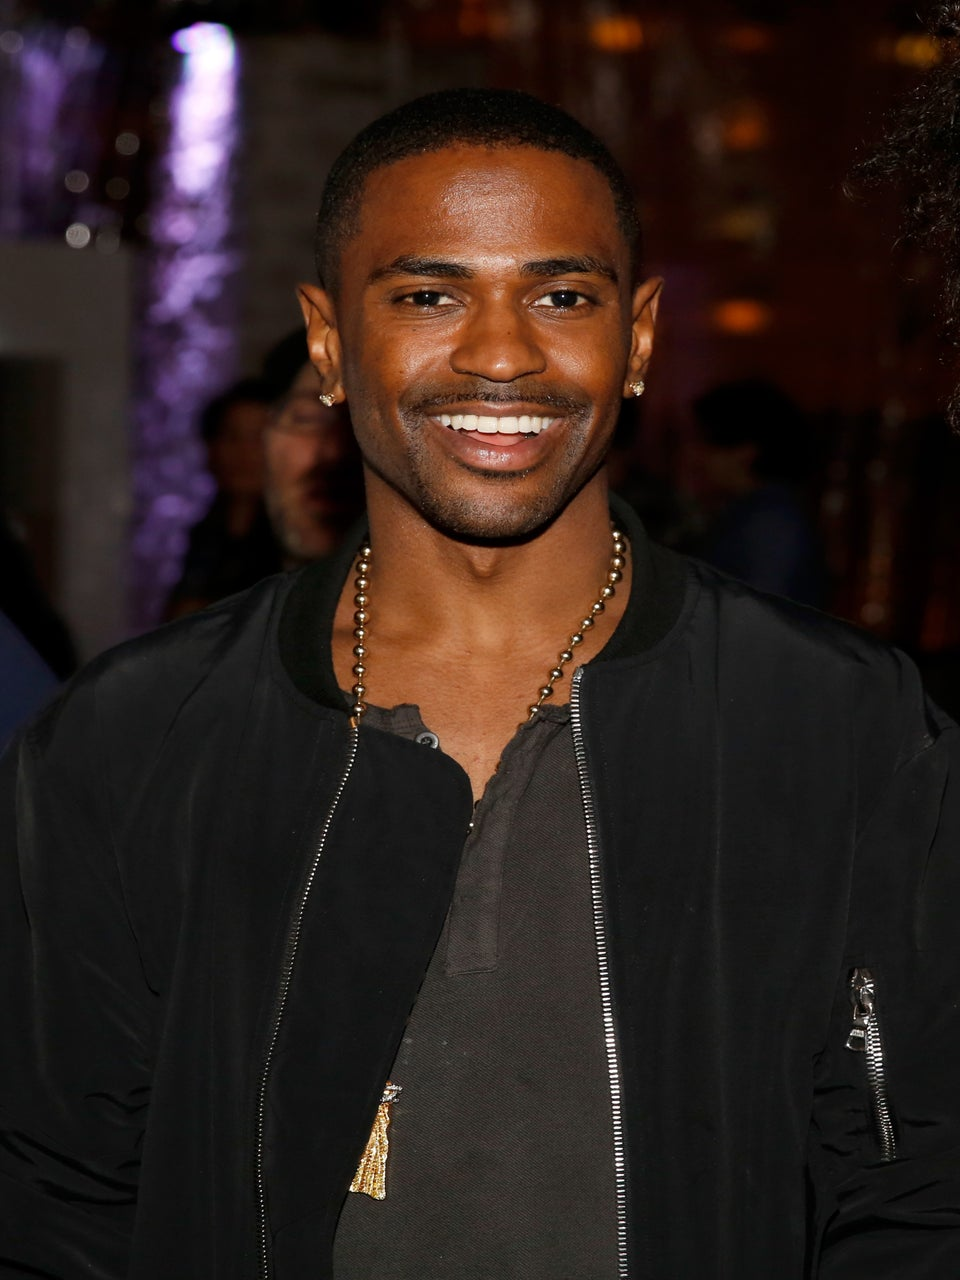 Big Sean is Fighting Student Homelessness